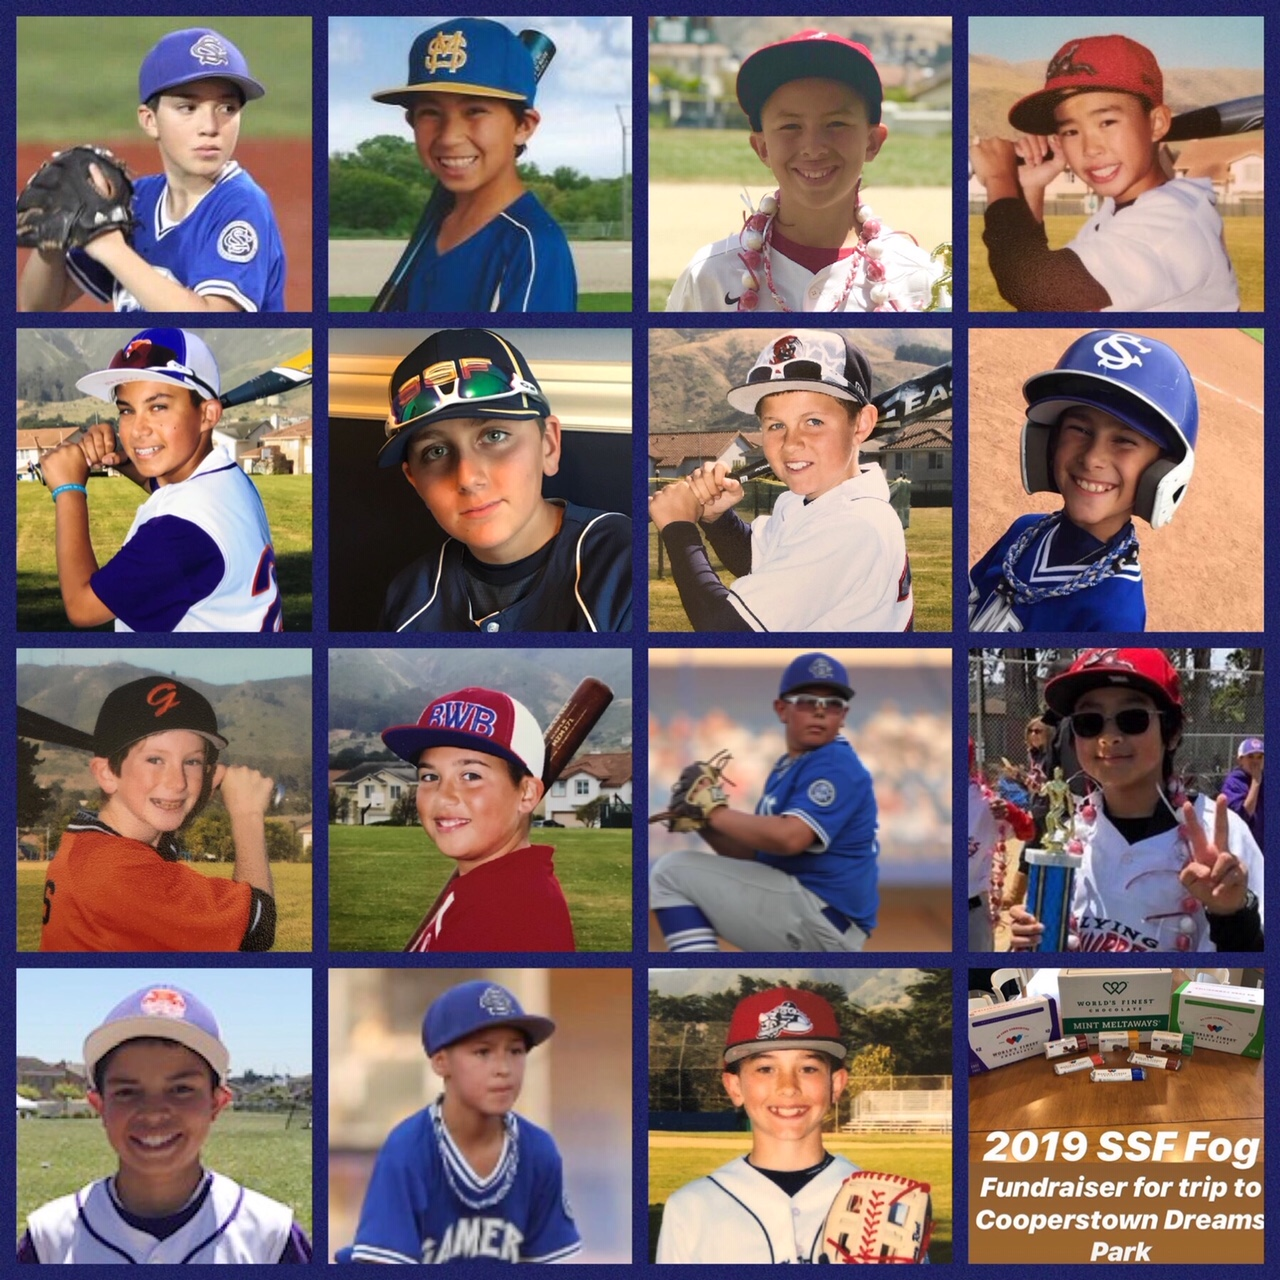 Support the 2019 SSF FOG Team as they Fund Raise Their Way to Cooperstown!